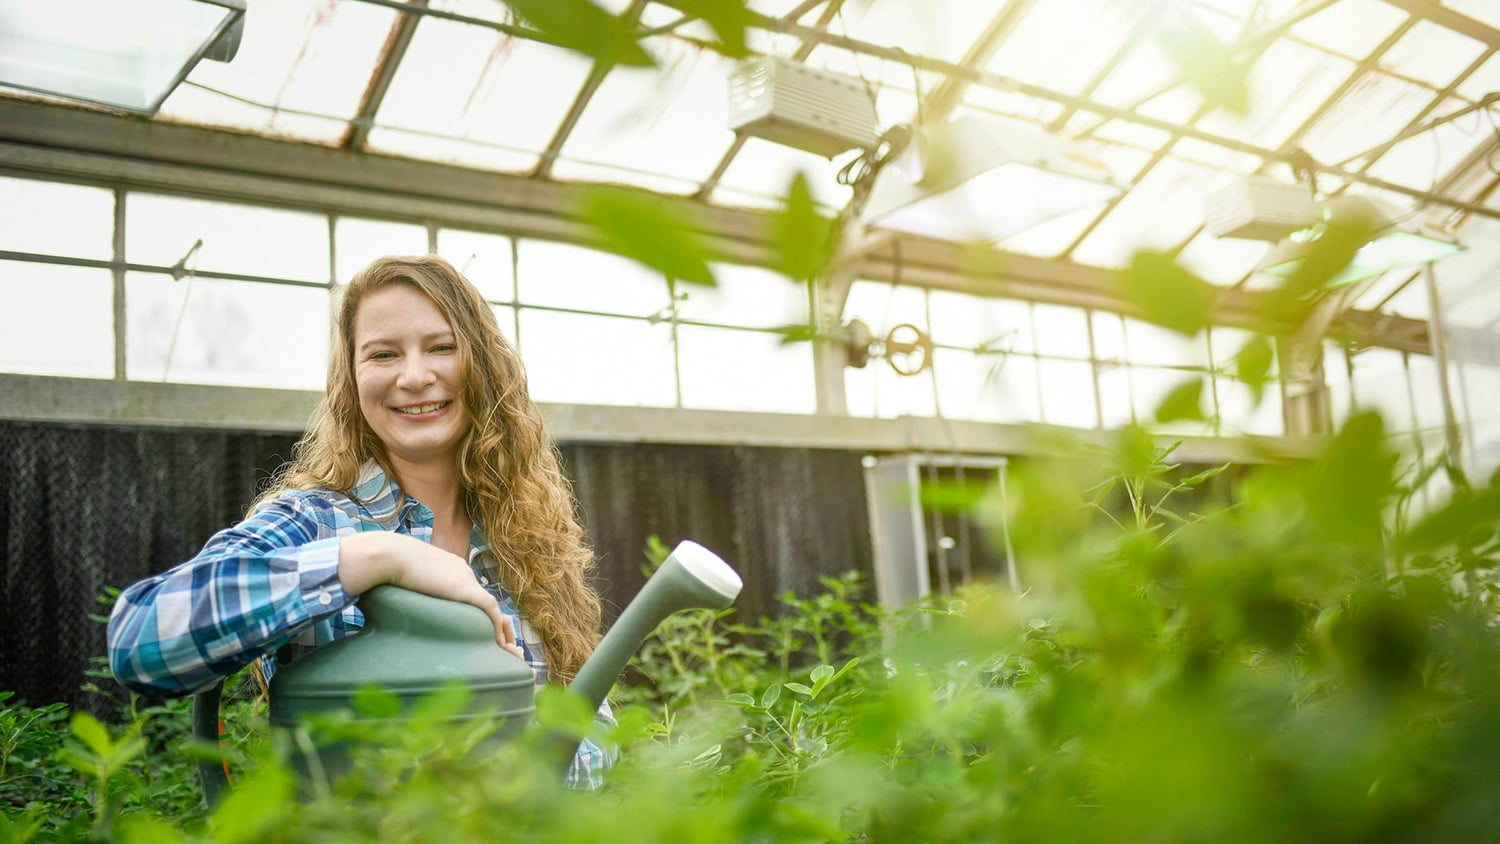 A student smiles from a greenhouse full of peanut plants.